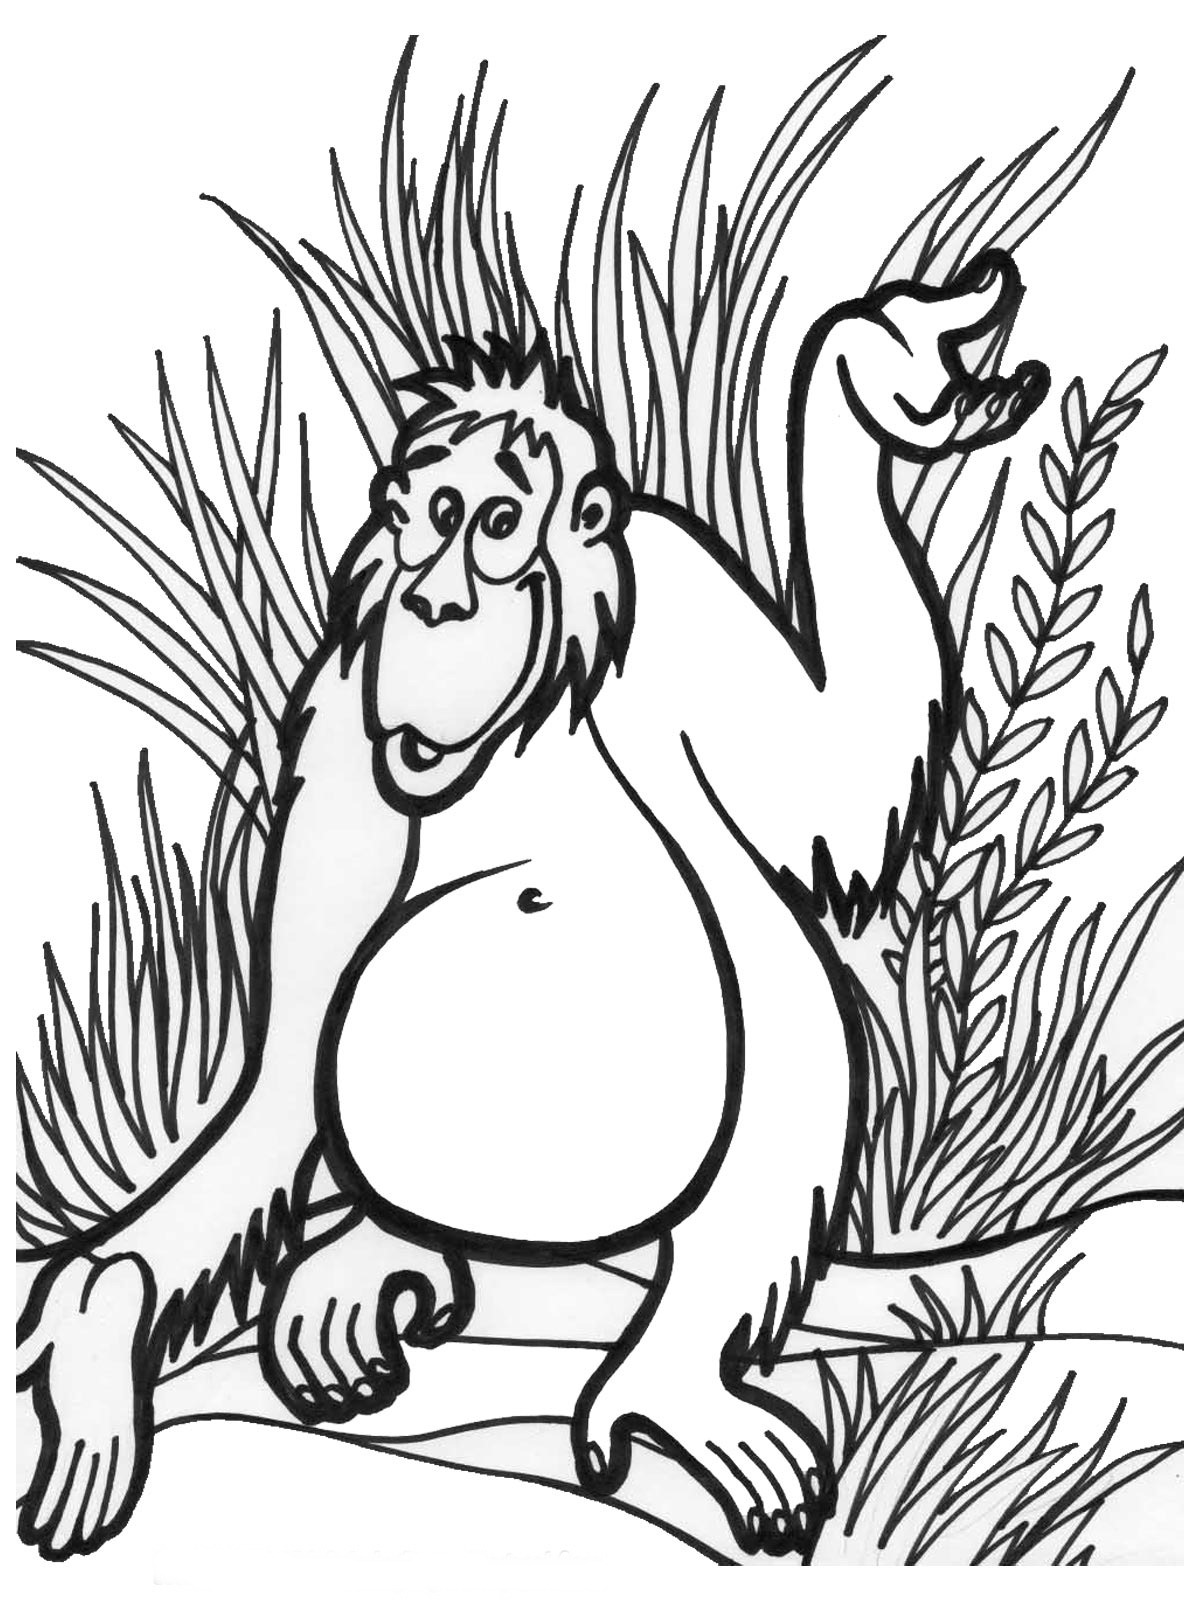 Jungle book coloring pages online - Jungle Animal Coloring Pages